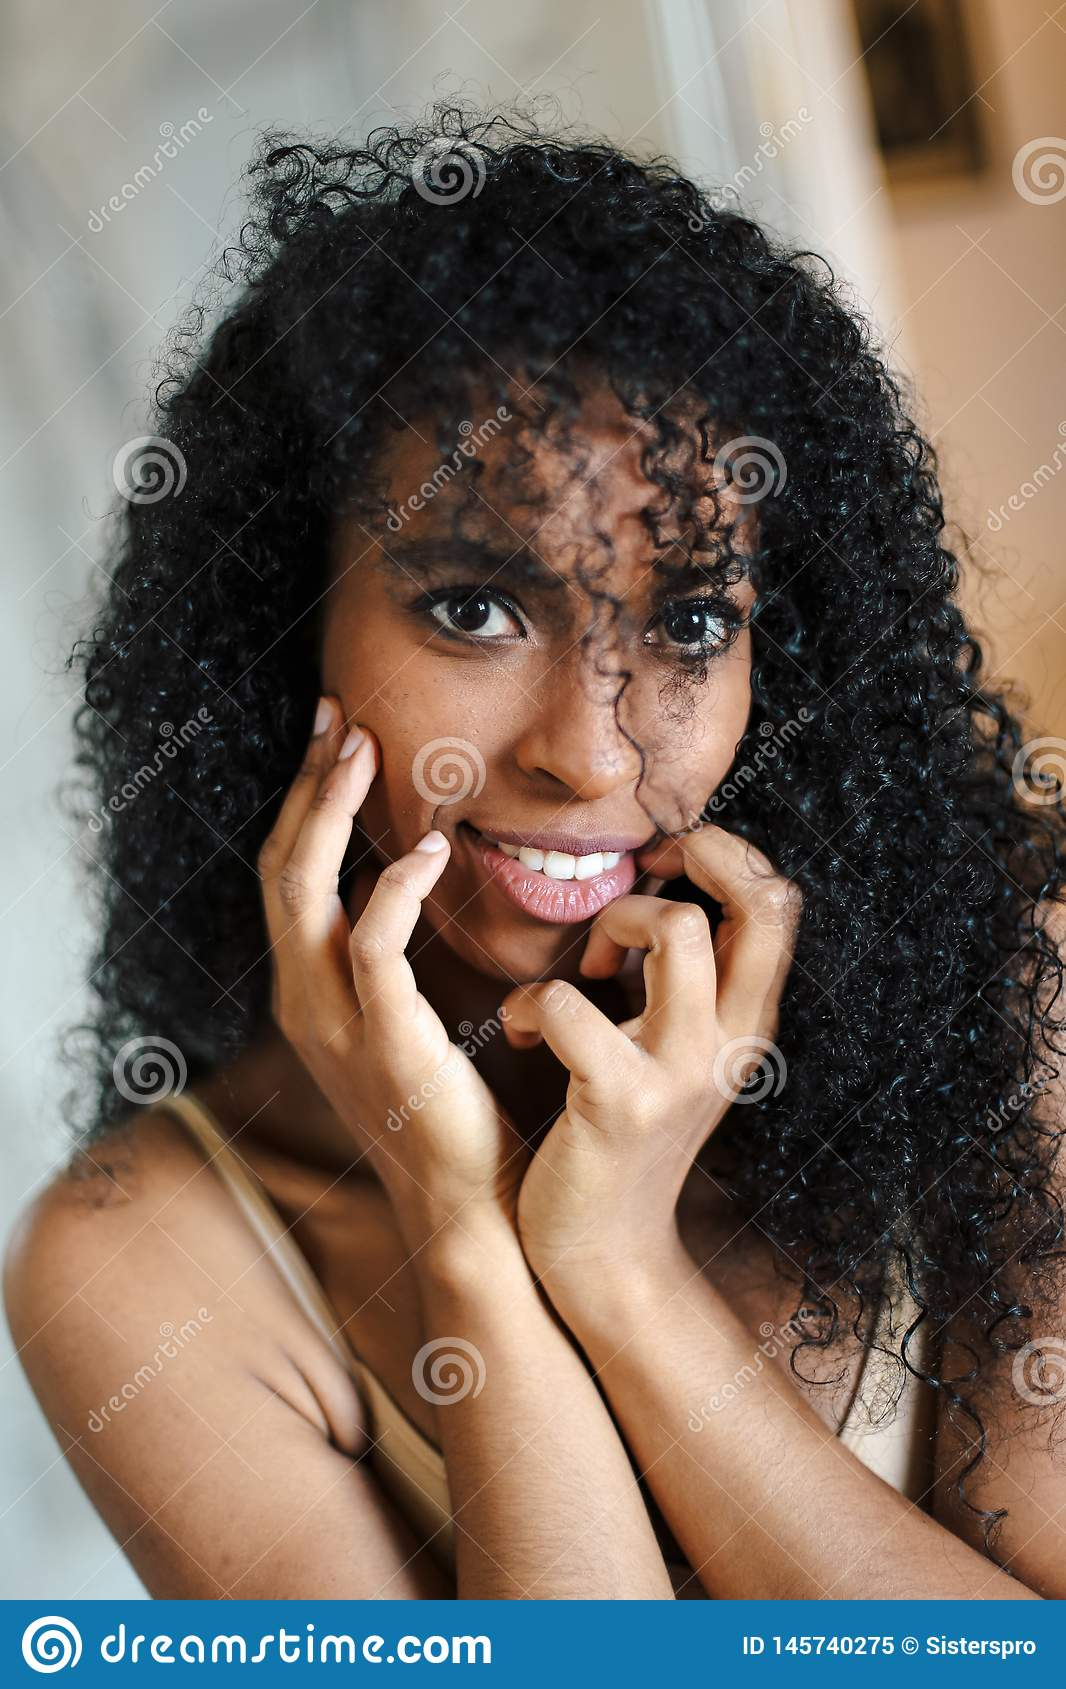 Close Up Portrait Of Cute Afro American Woman With Black Curly